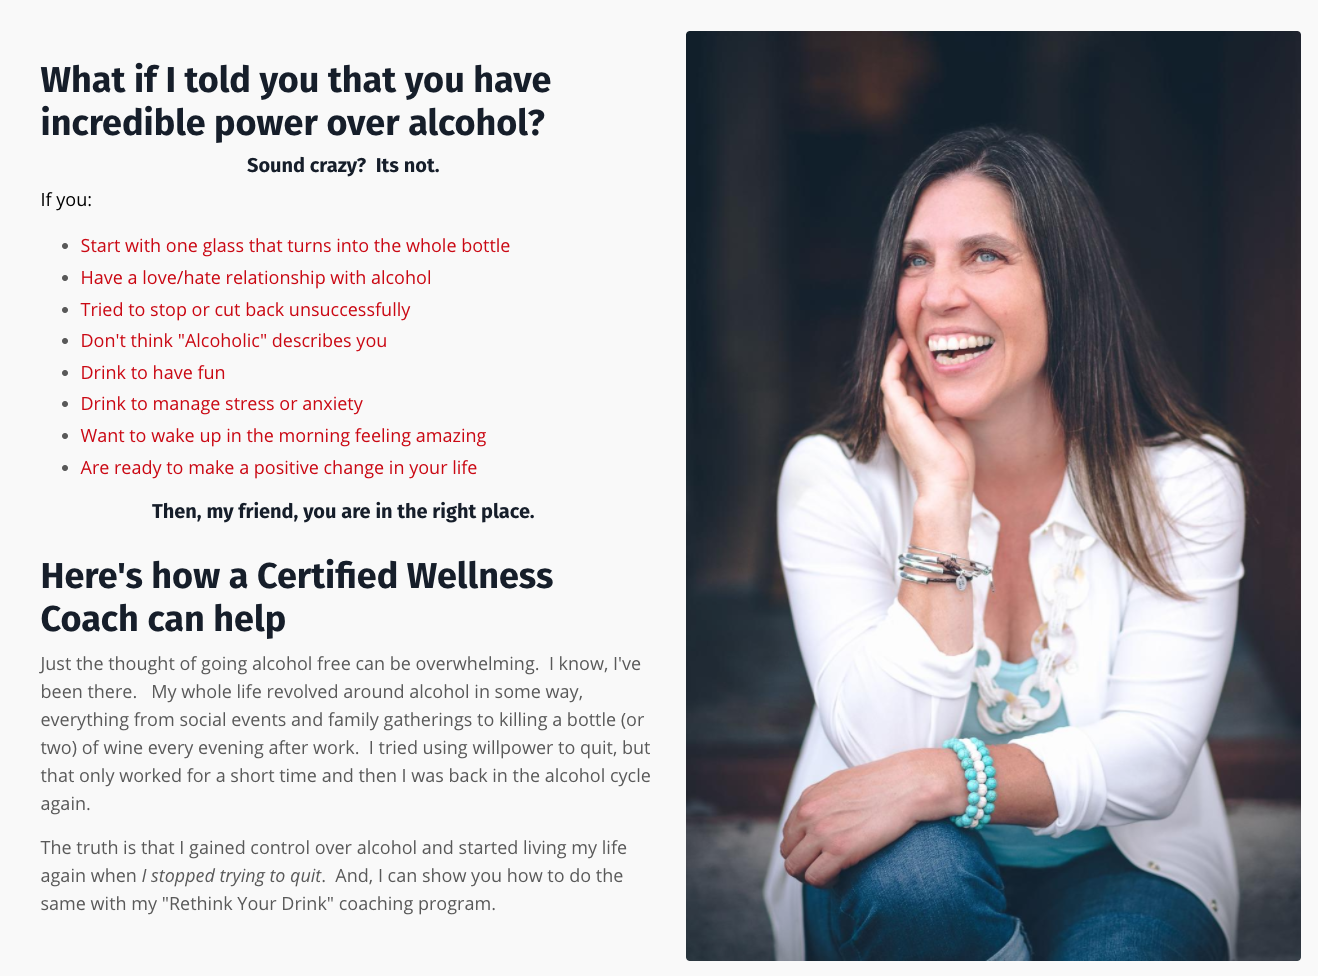 screenshot of the Rethink your Drink website with a photo of a smiling woman and copy about overcoming alcohol abuse